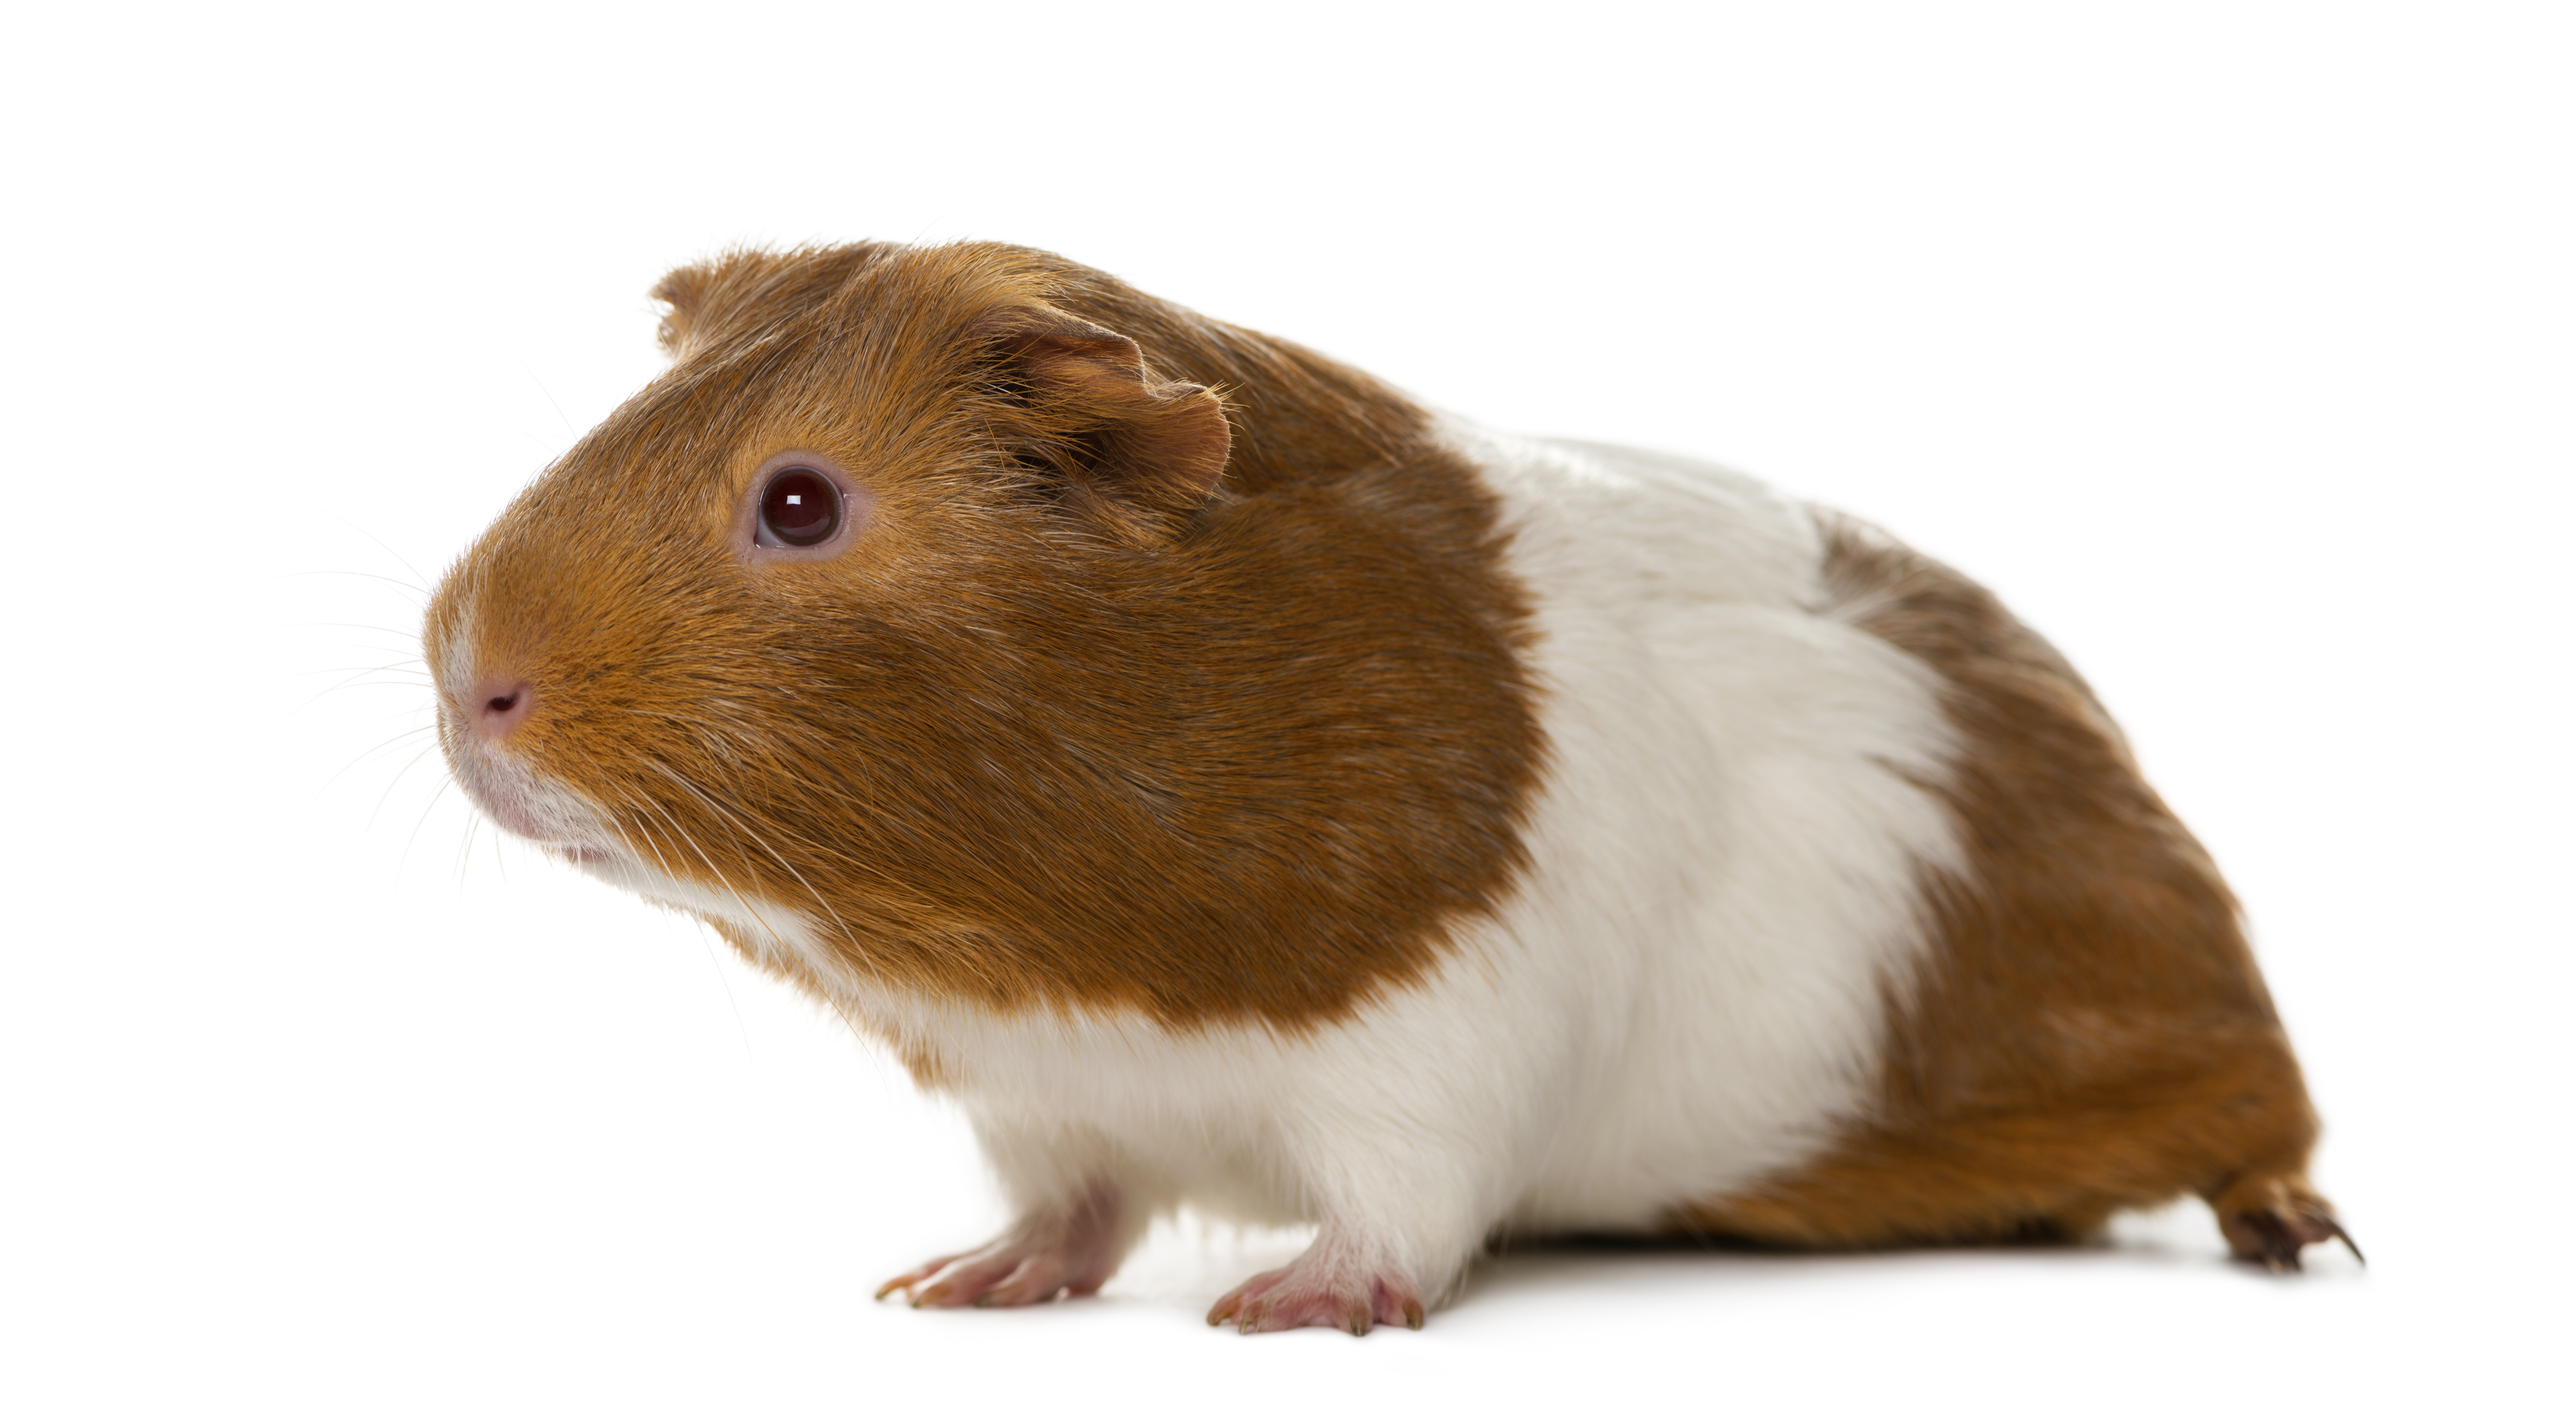 guinea pig 1942 british society for immunology